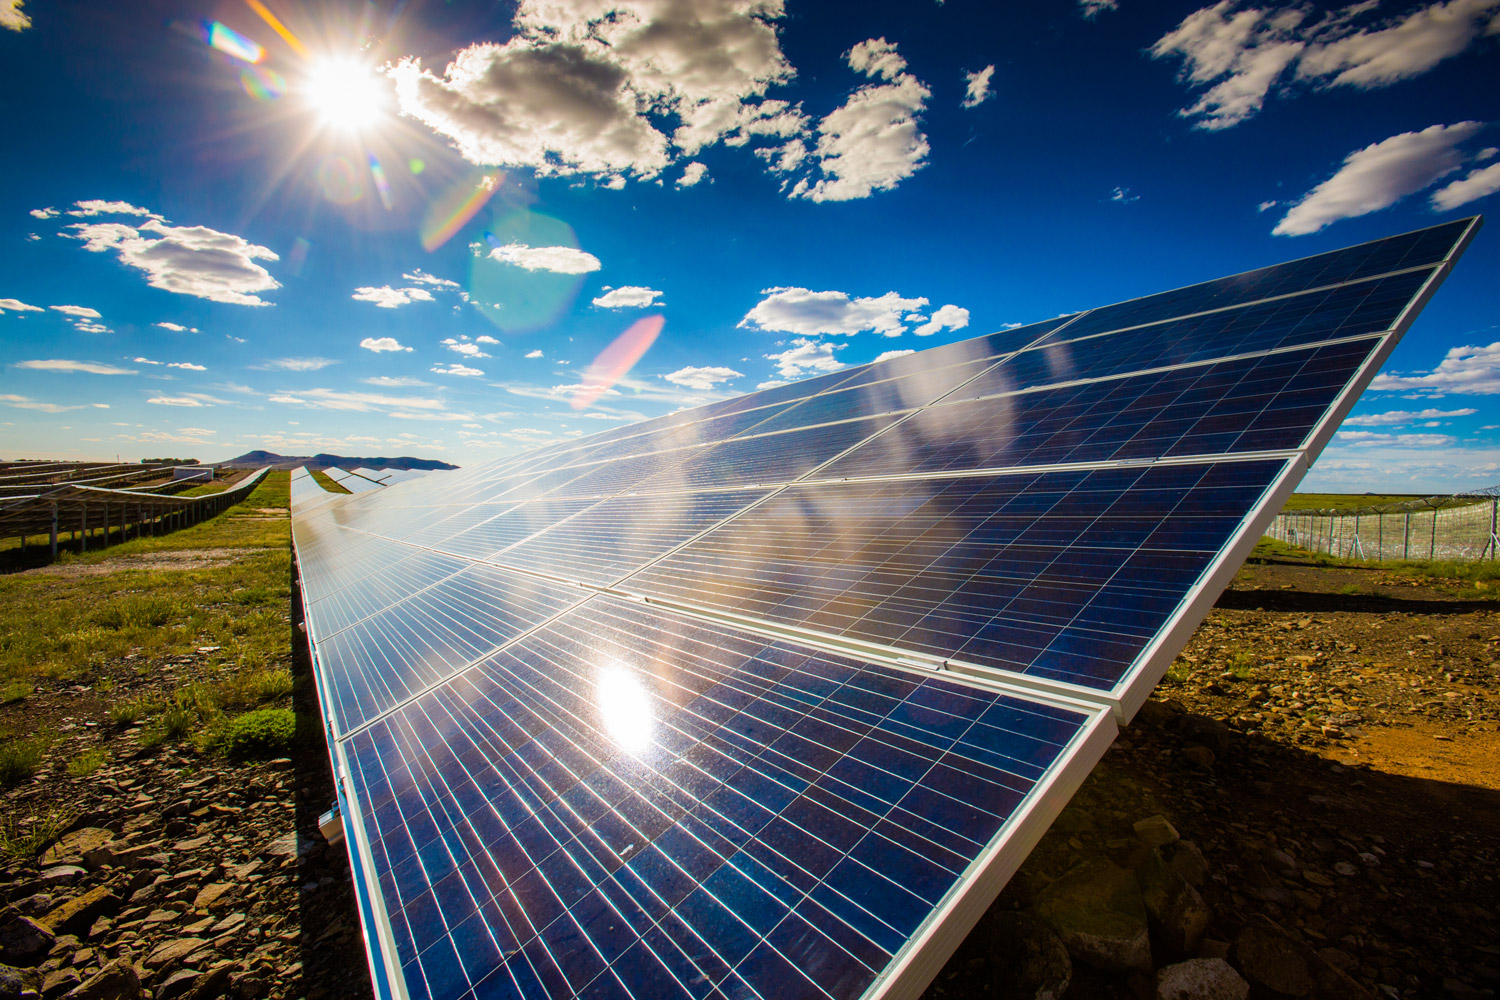 How Incentive Programs and Renewable Energy Targets Reduced Solar Power Costs Globally